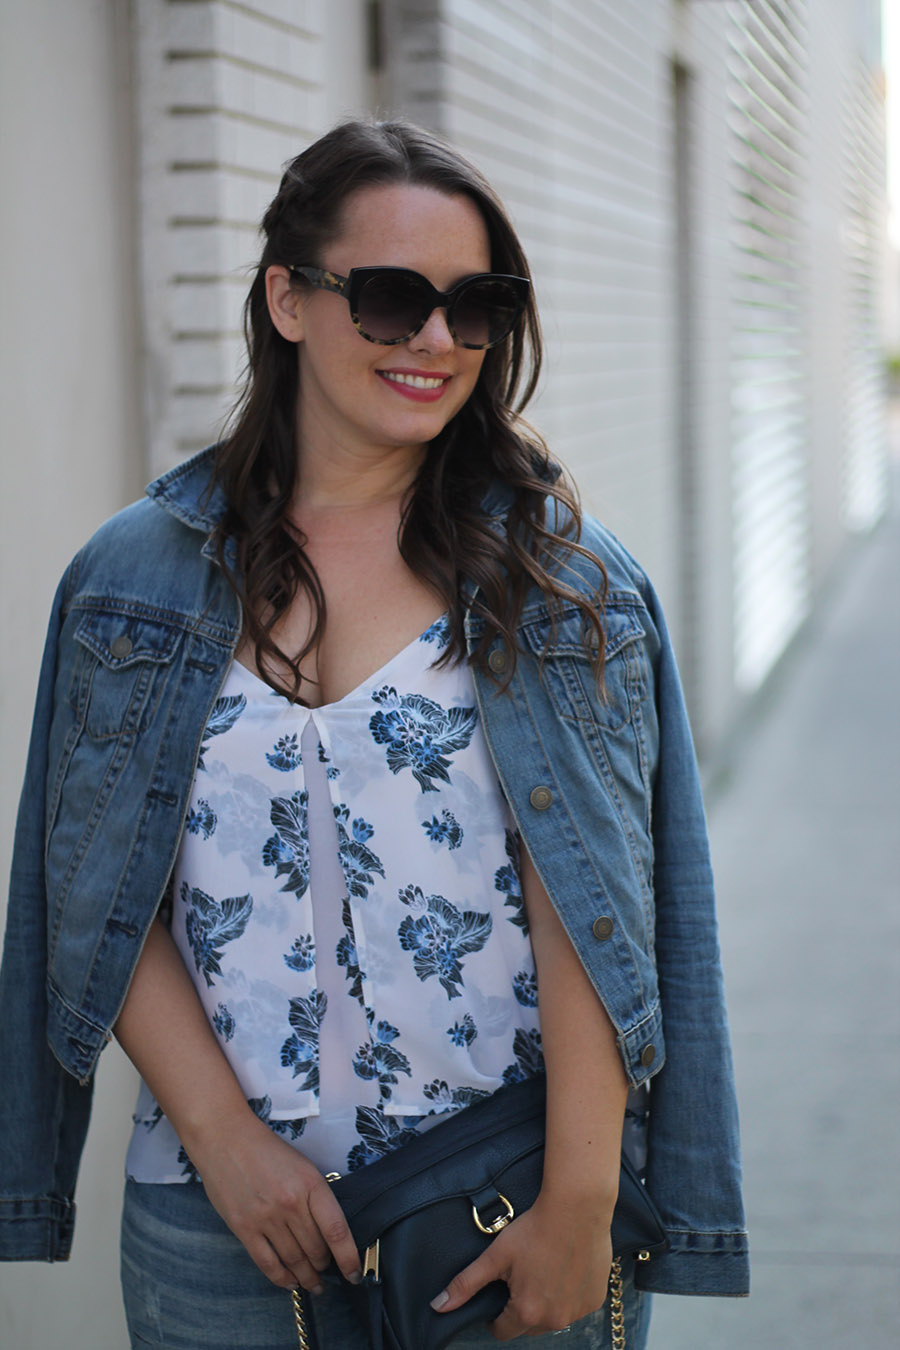 denim-jacket-rebecca-minkoff-mini-mac-toms-sunglasses